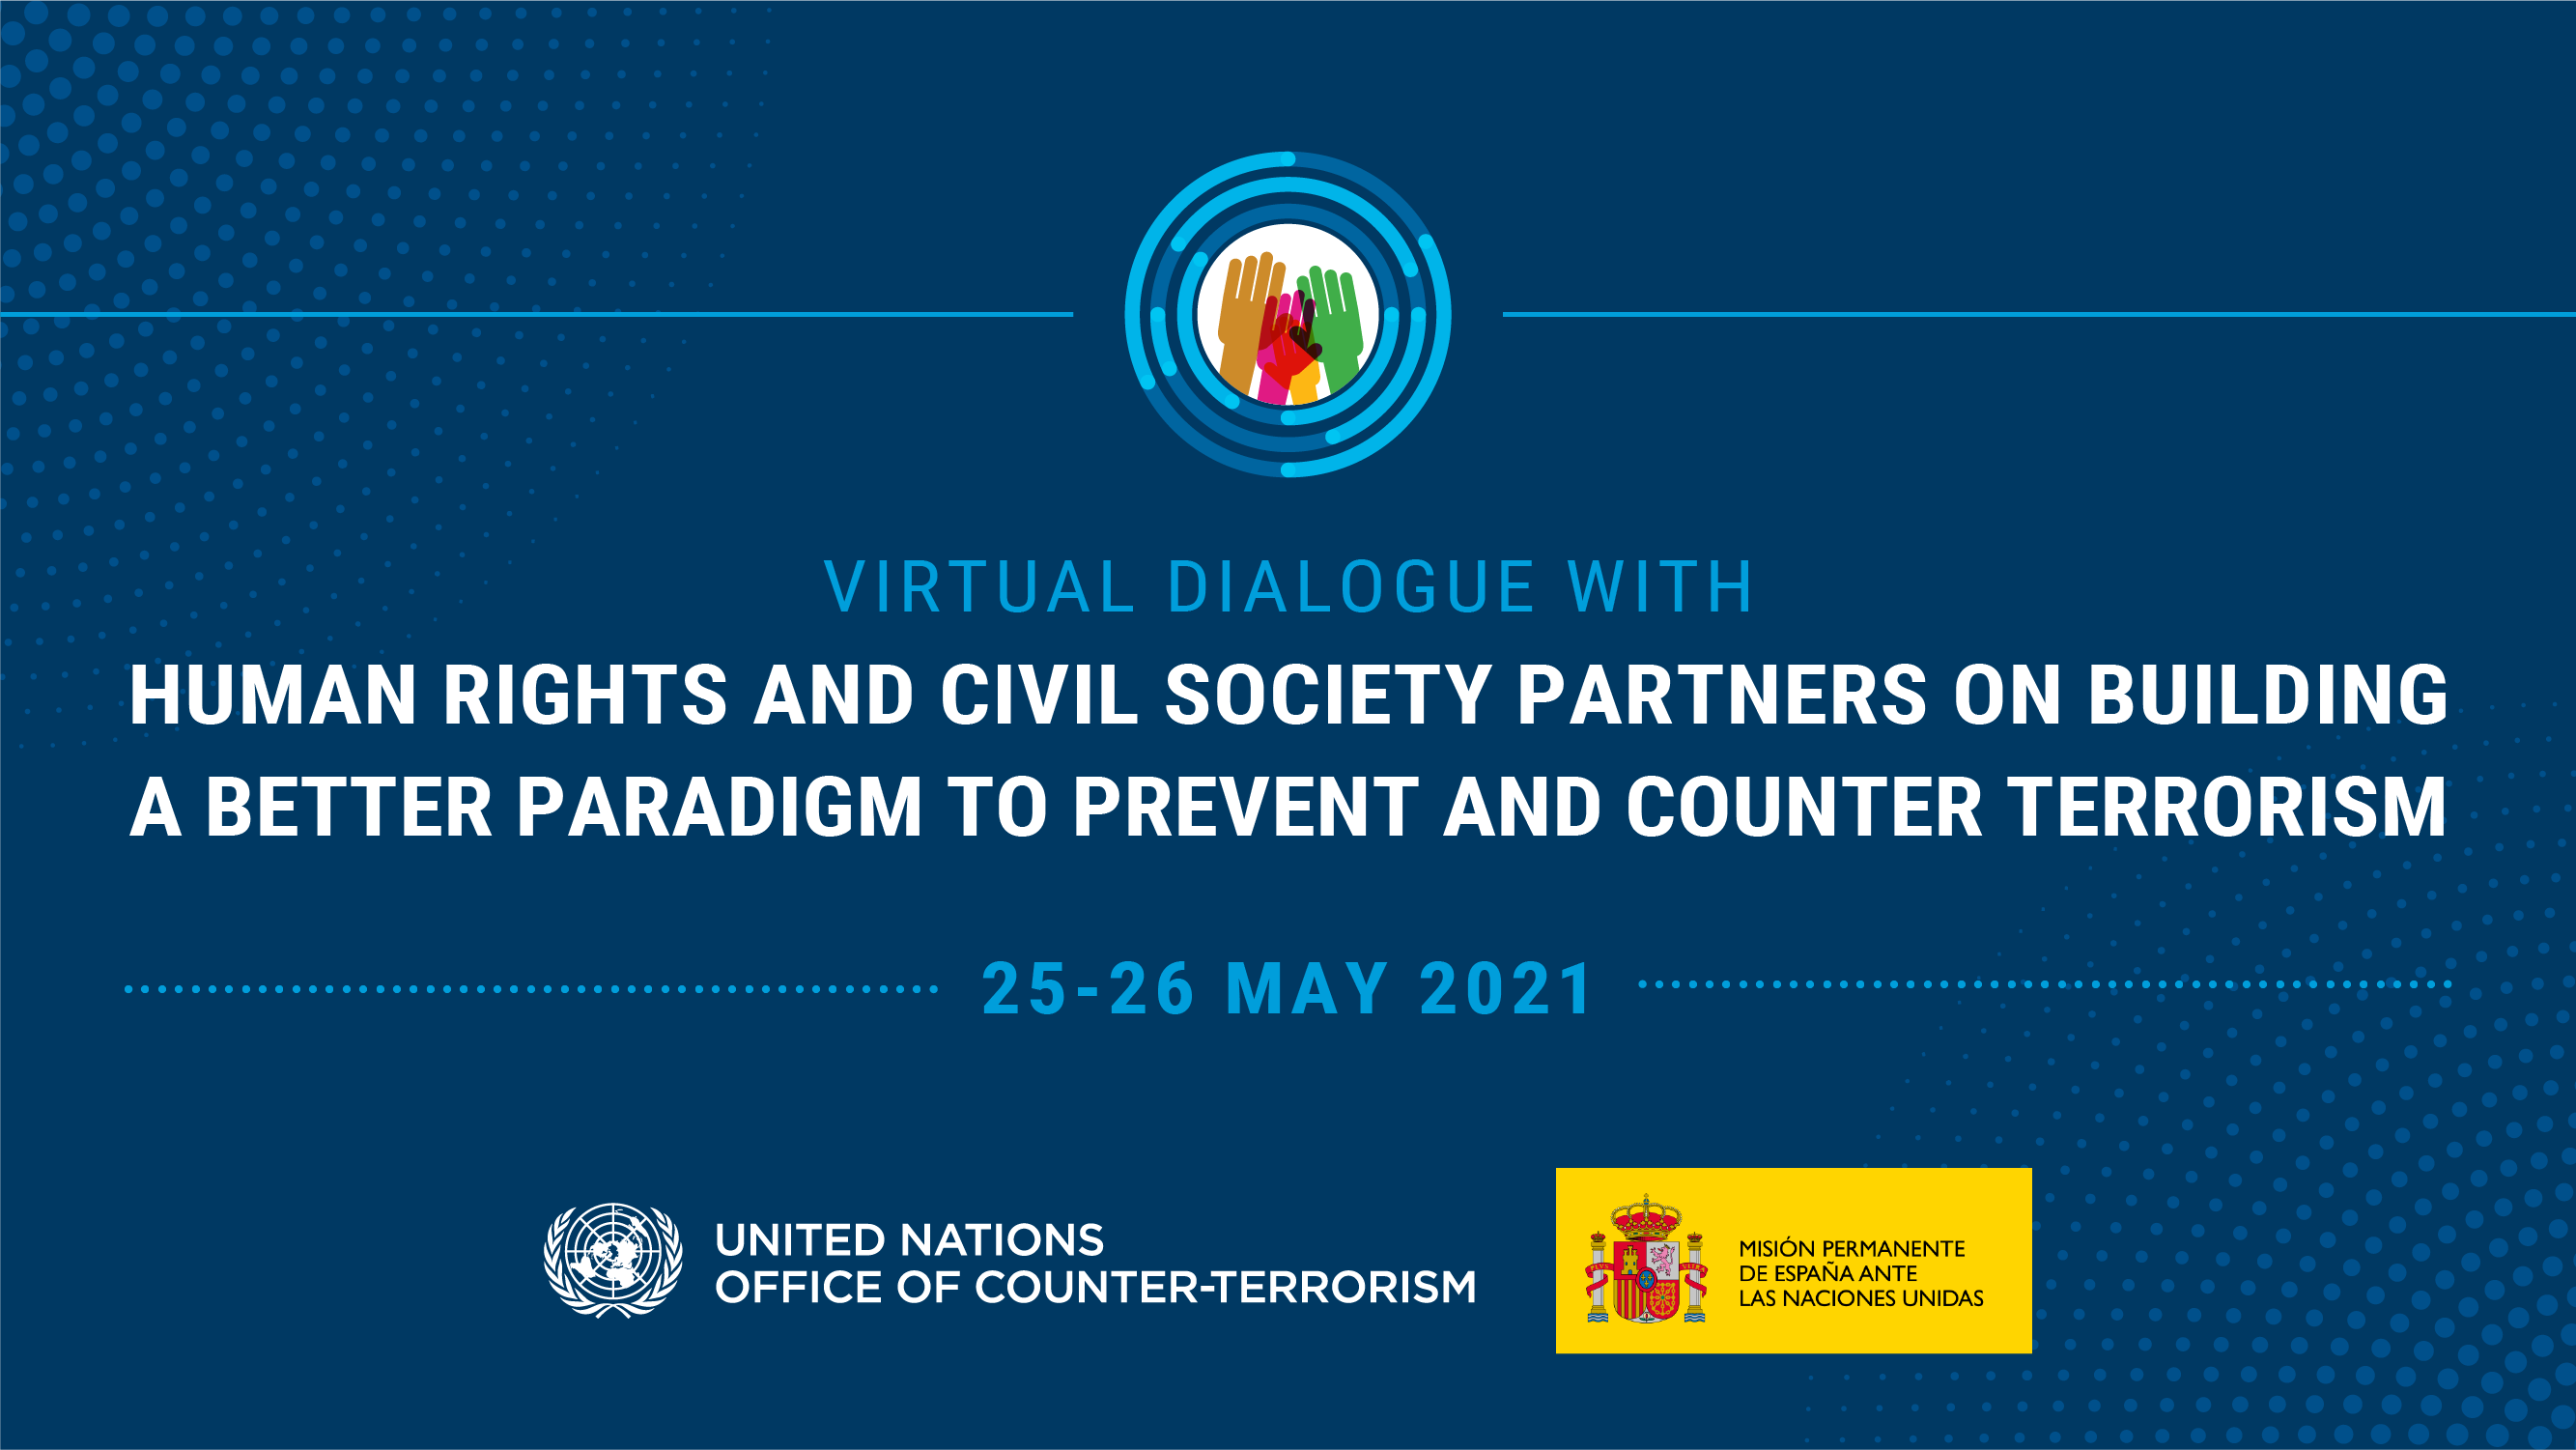 Preview of the Virtual Dialogue event, May 25-26 2021